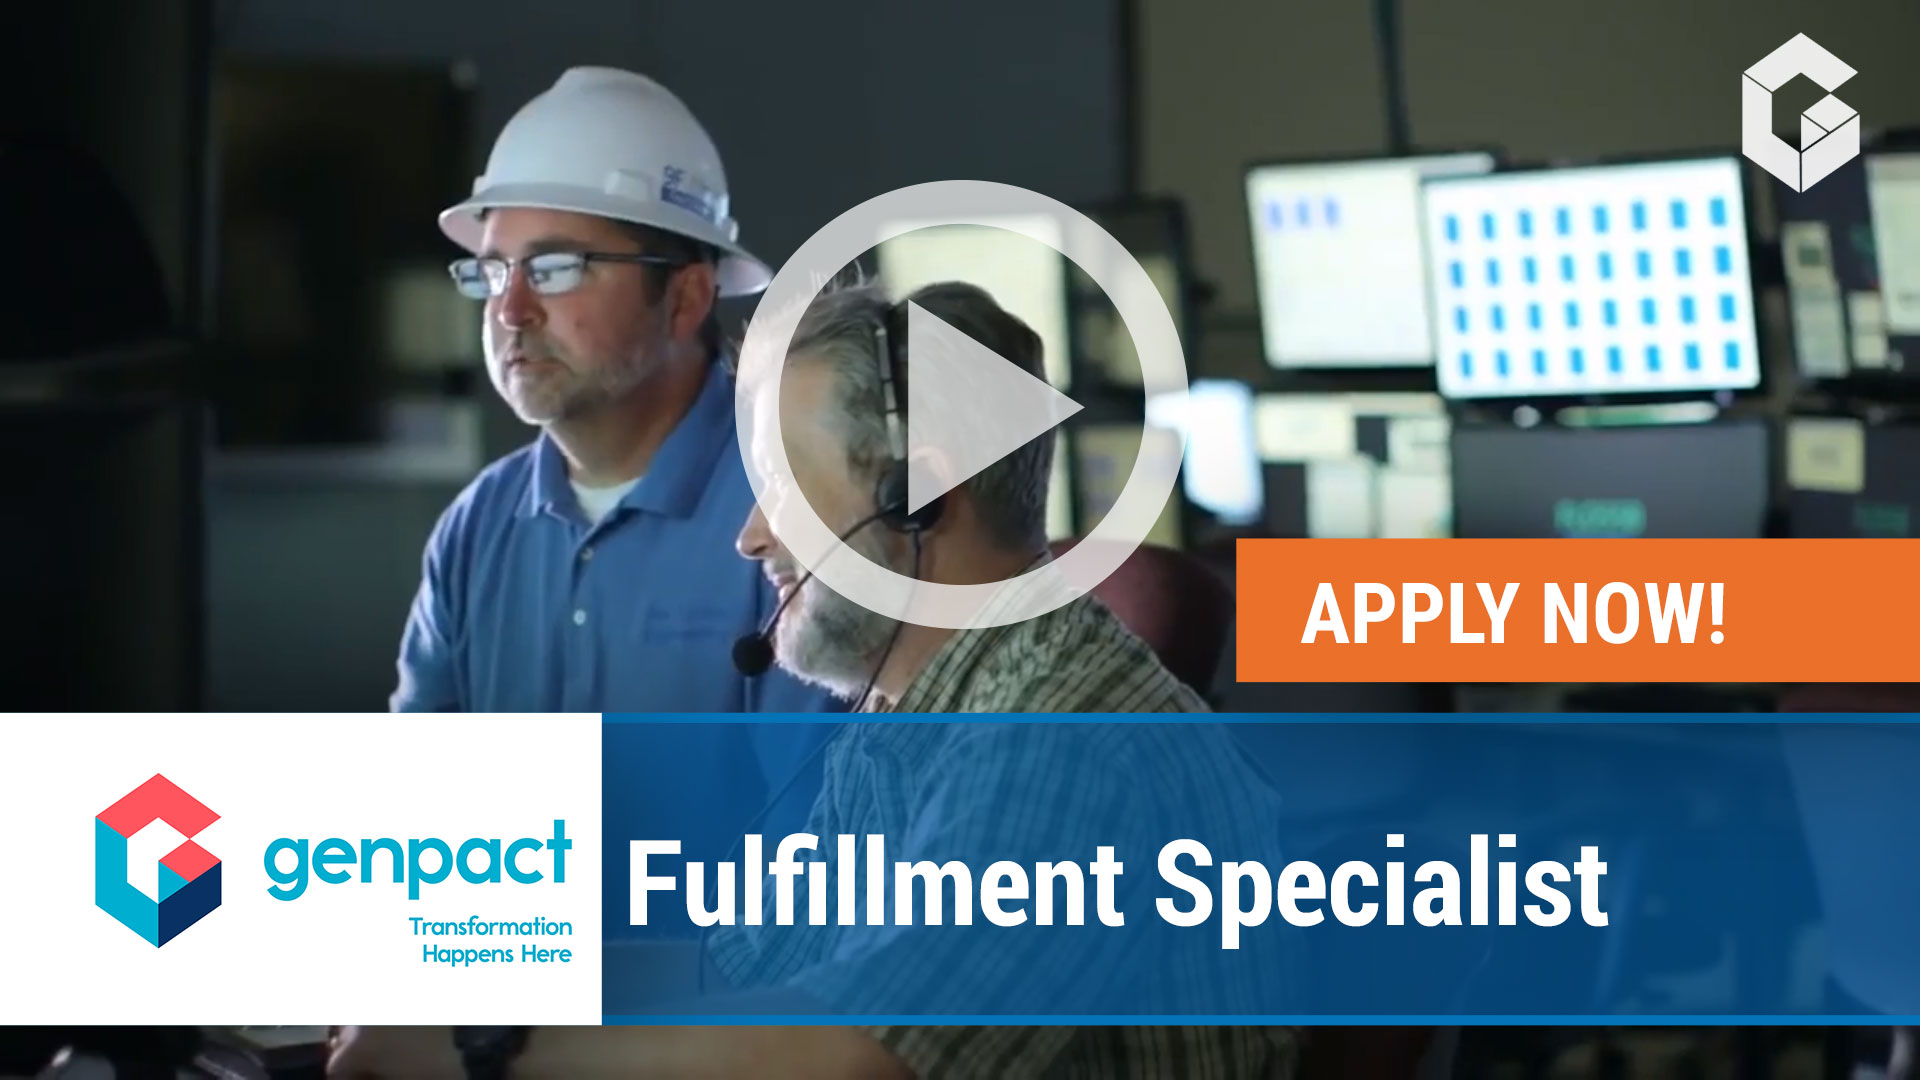 Watch our careers video for available job opening Fulfillment Specialist in Cedar Park, Texas in Cedar Park, Texas